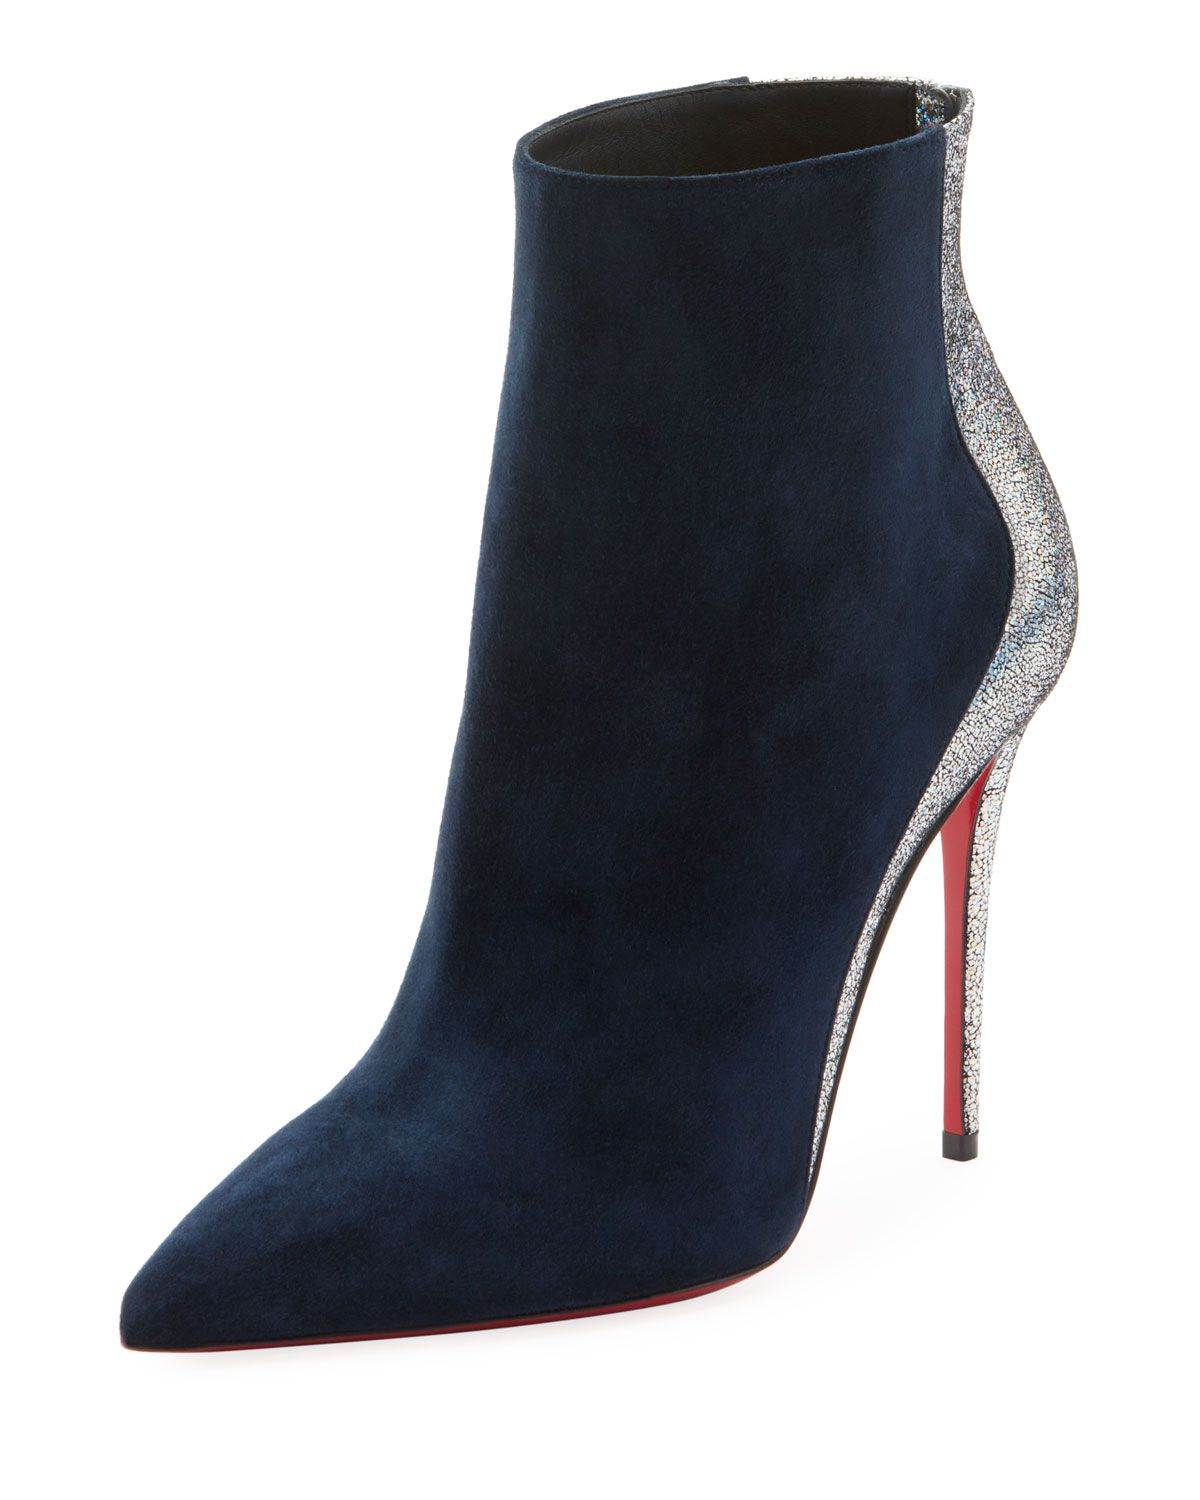 24dd1f752bd Delicotte Suede Red Sole Booties | Christian Louboutin in 2019 ...